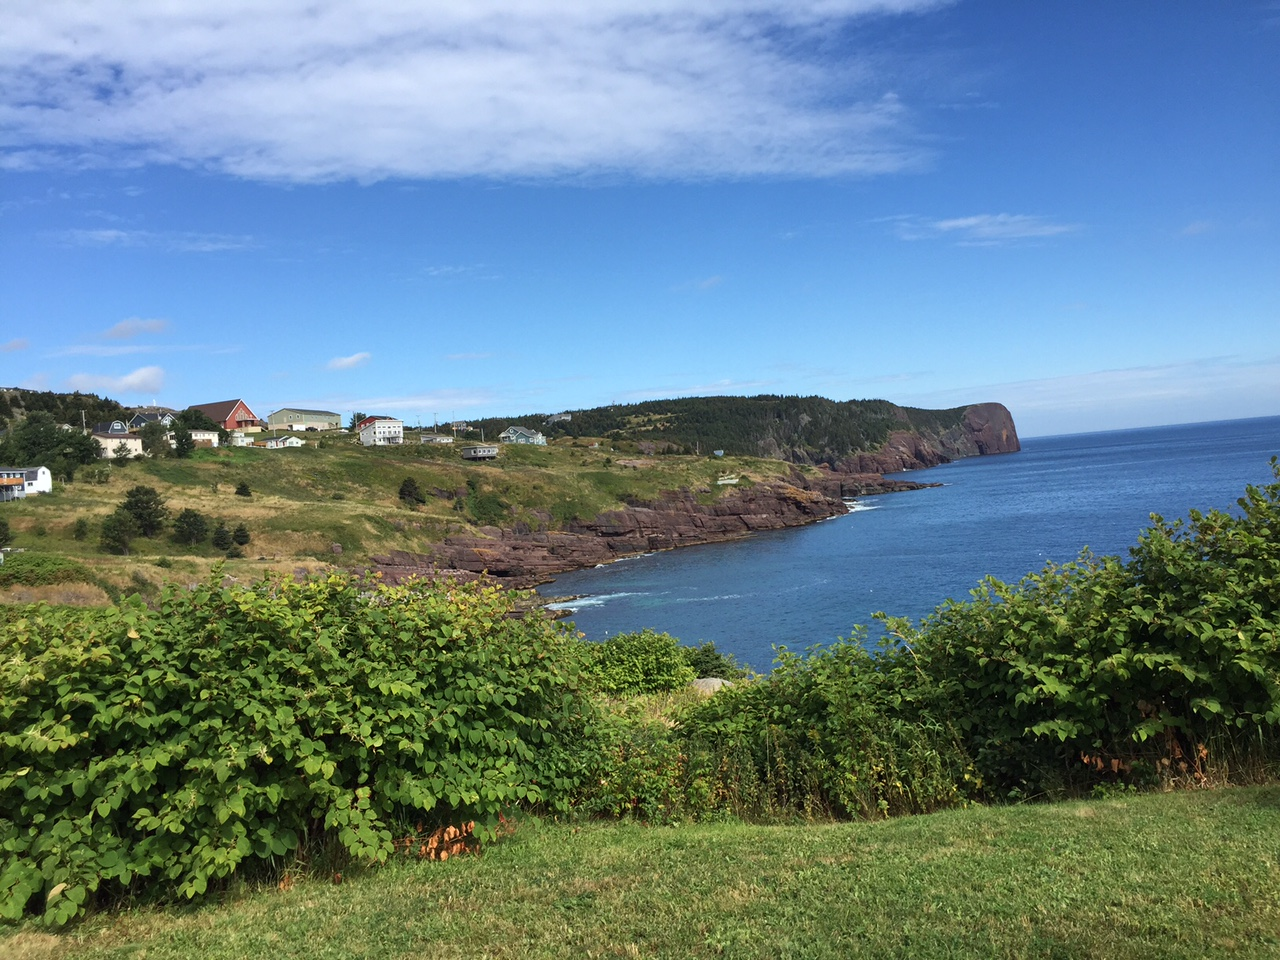 A breathtaking view in Flatrock, Newfoundland